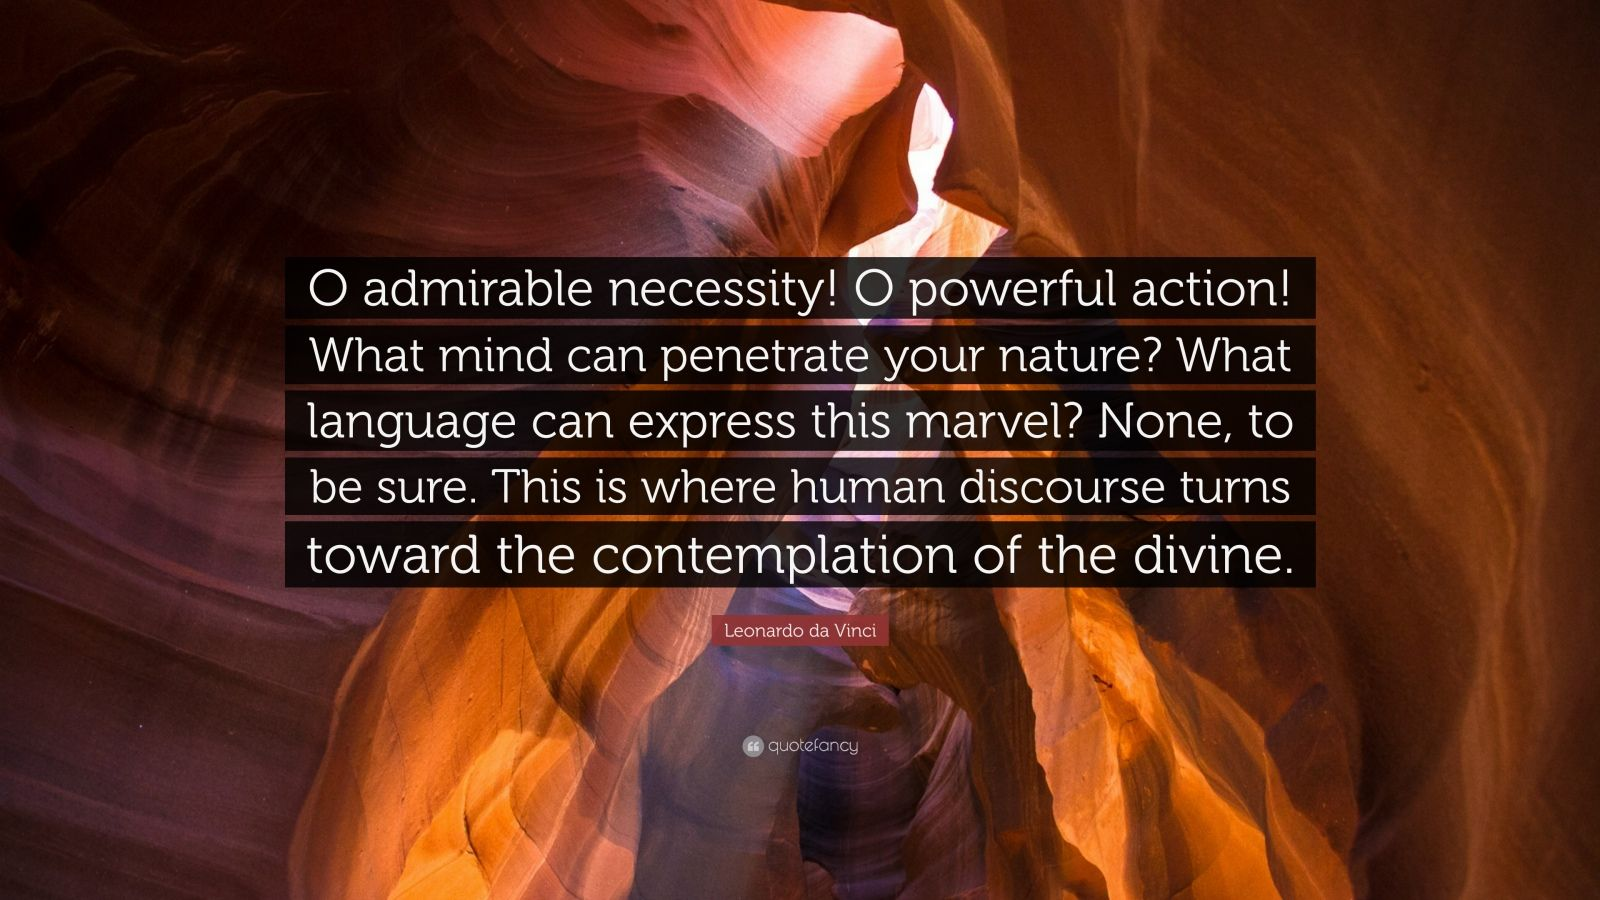 """Leonardo da Vinci Quote: """"O admirable necessity! O powerful action! What mind can penetrate your nature? What language can express this marvel? None, to be sure. This is where human discourse turns toward the contemplation of the divine."""""""